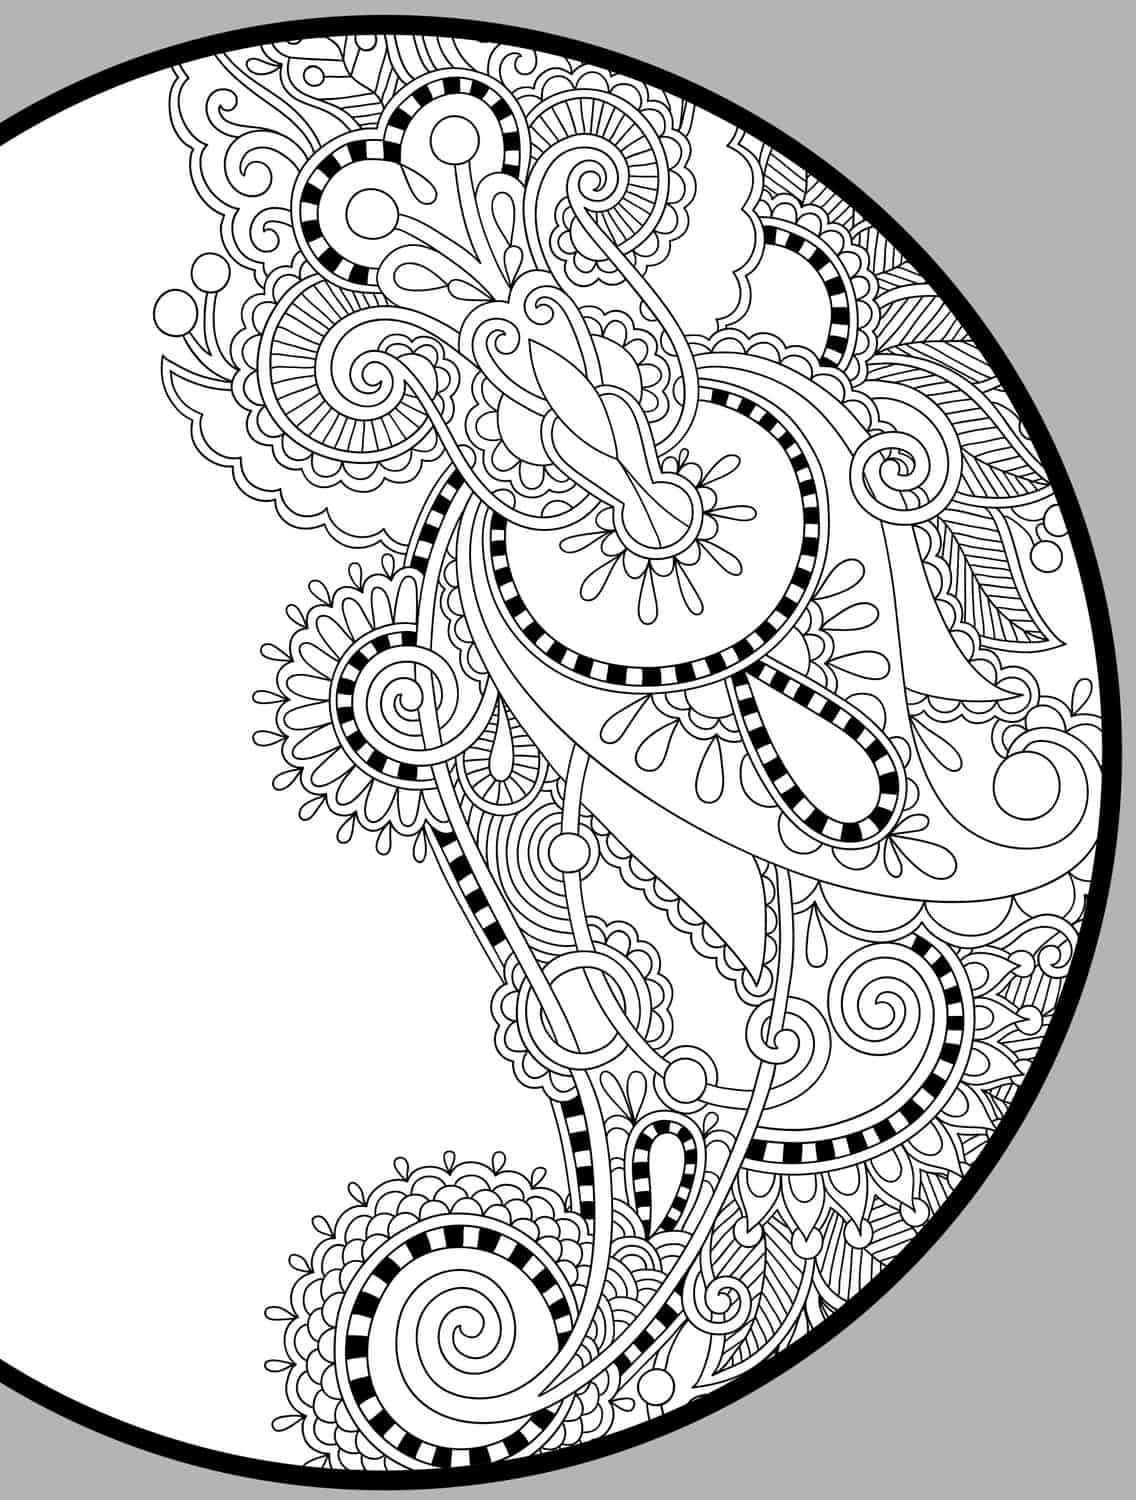 Colouring pages for adults printable free - Pretty Holiday Free Printable Coloring Pages Small